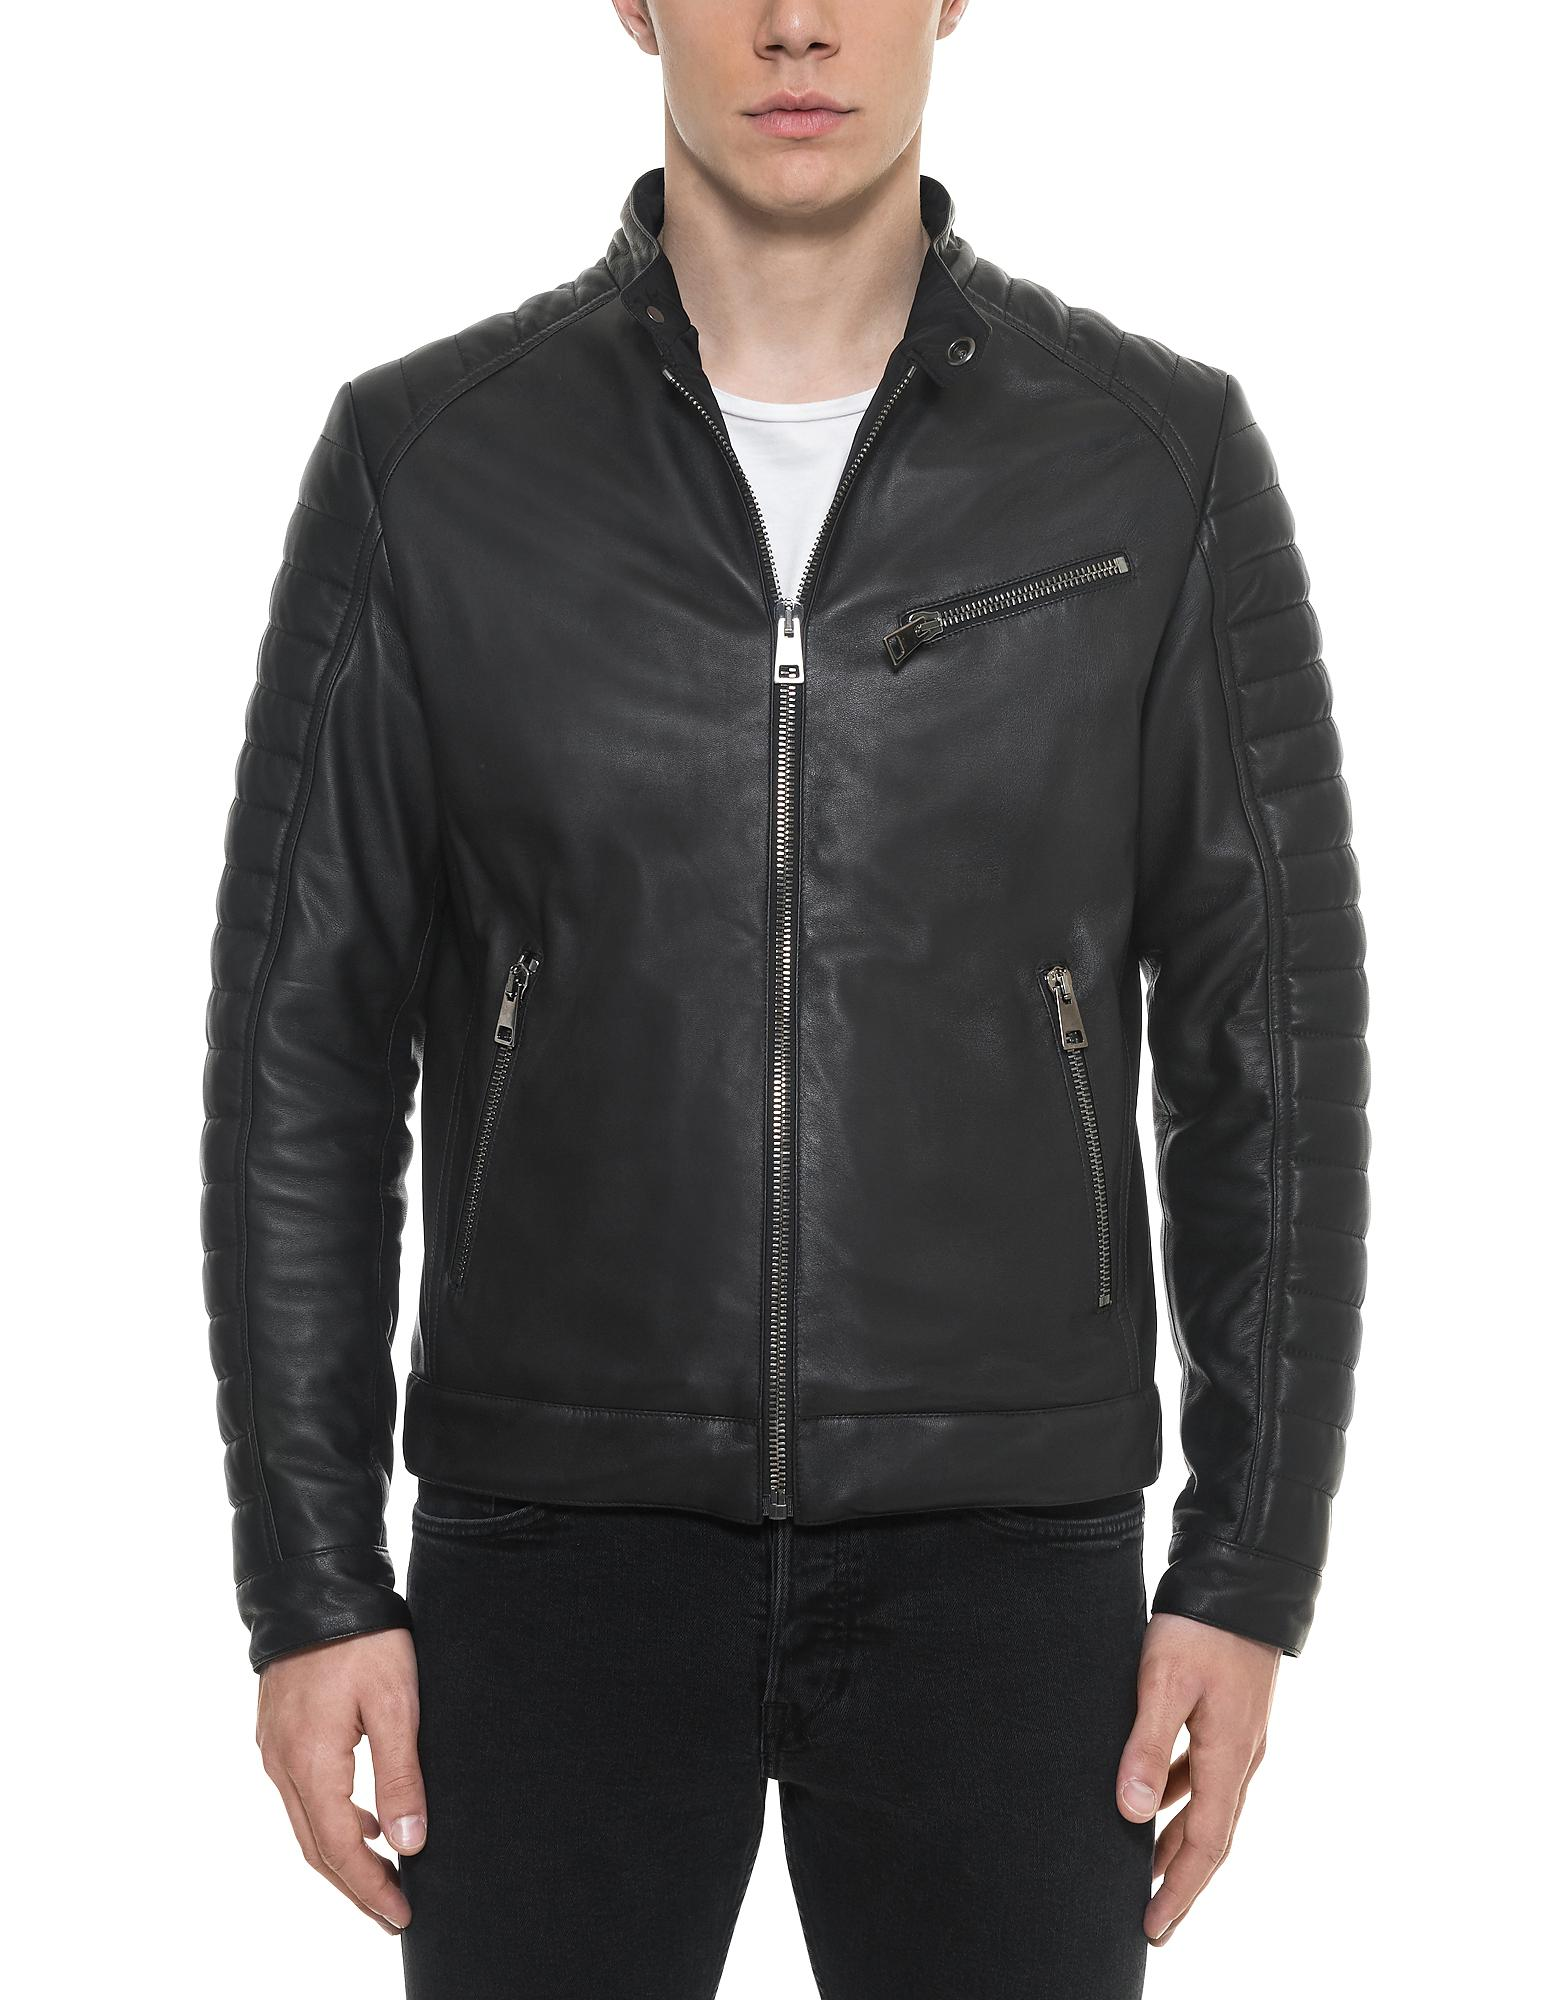 65970d13a Lyst - FORZIERI Black Padded Leather Men's Biker Jacket in Black for Men